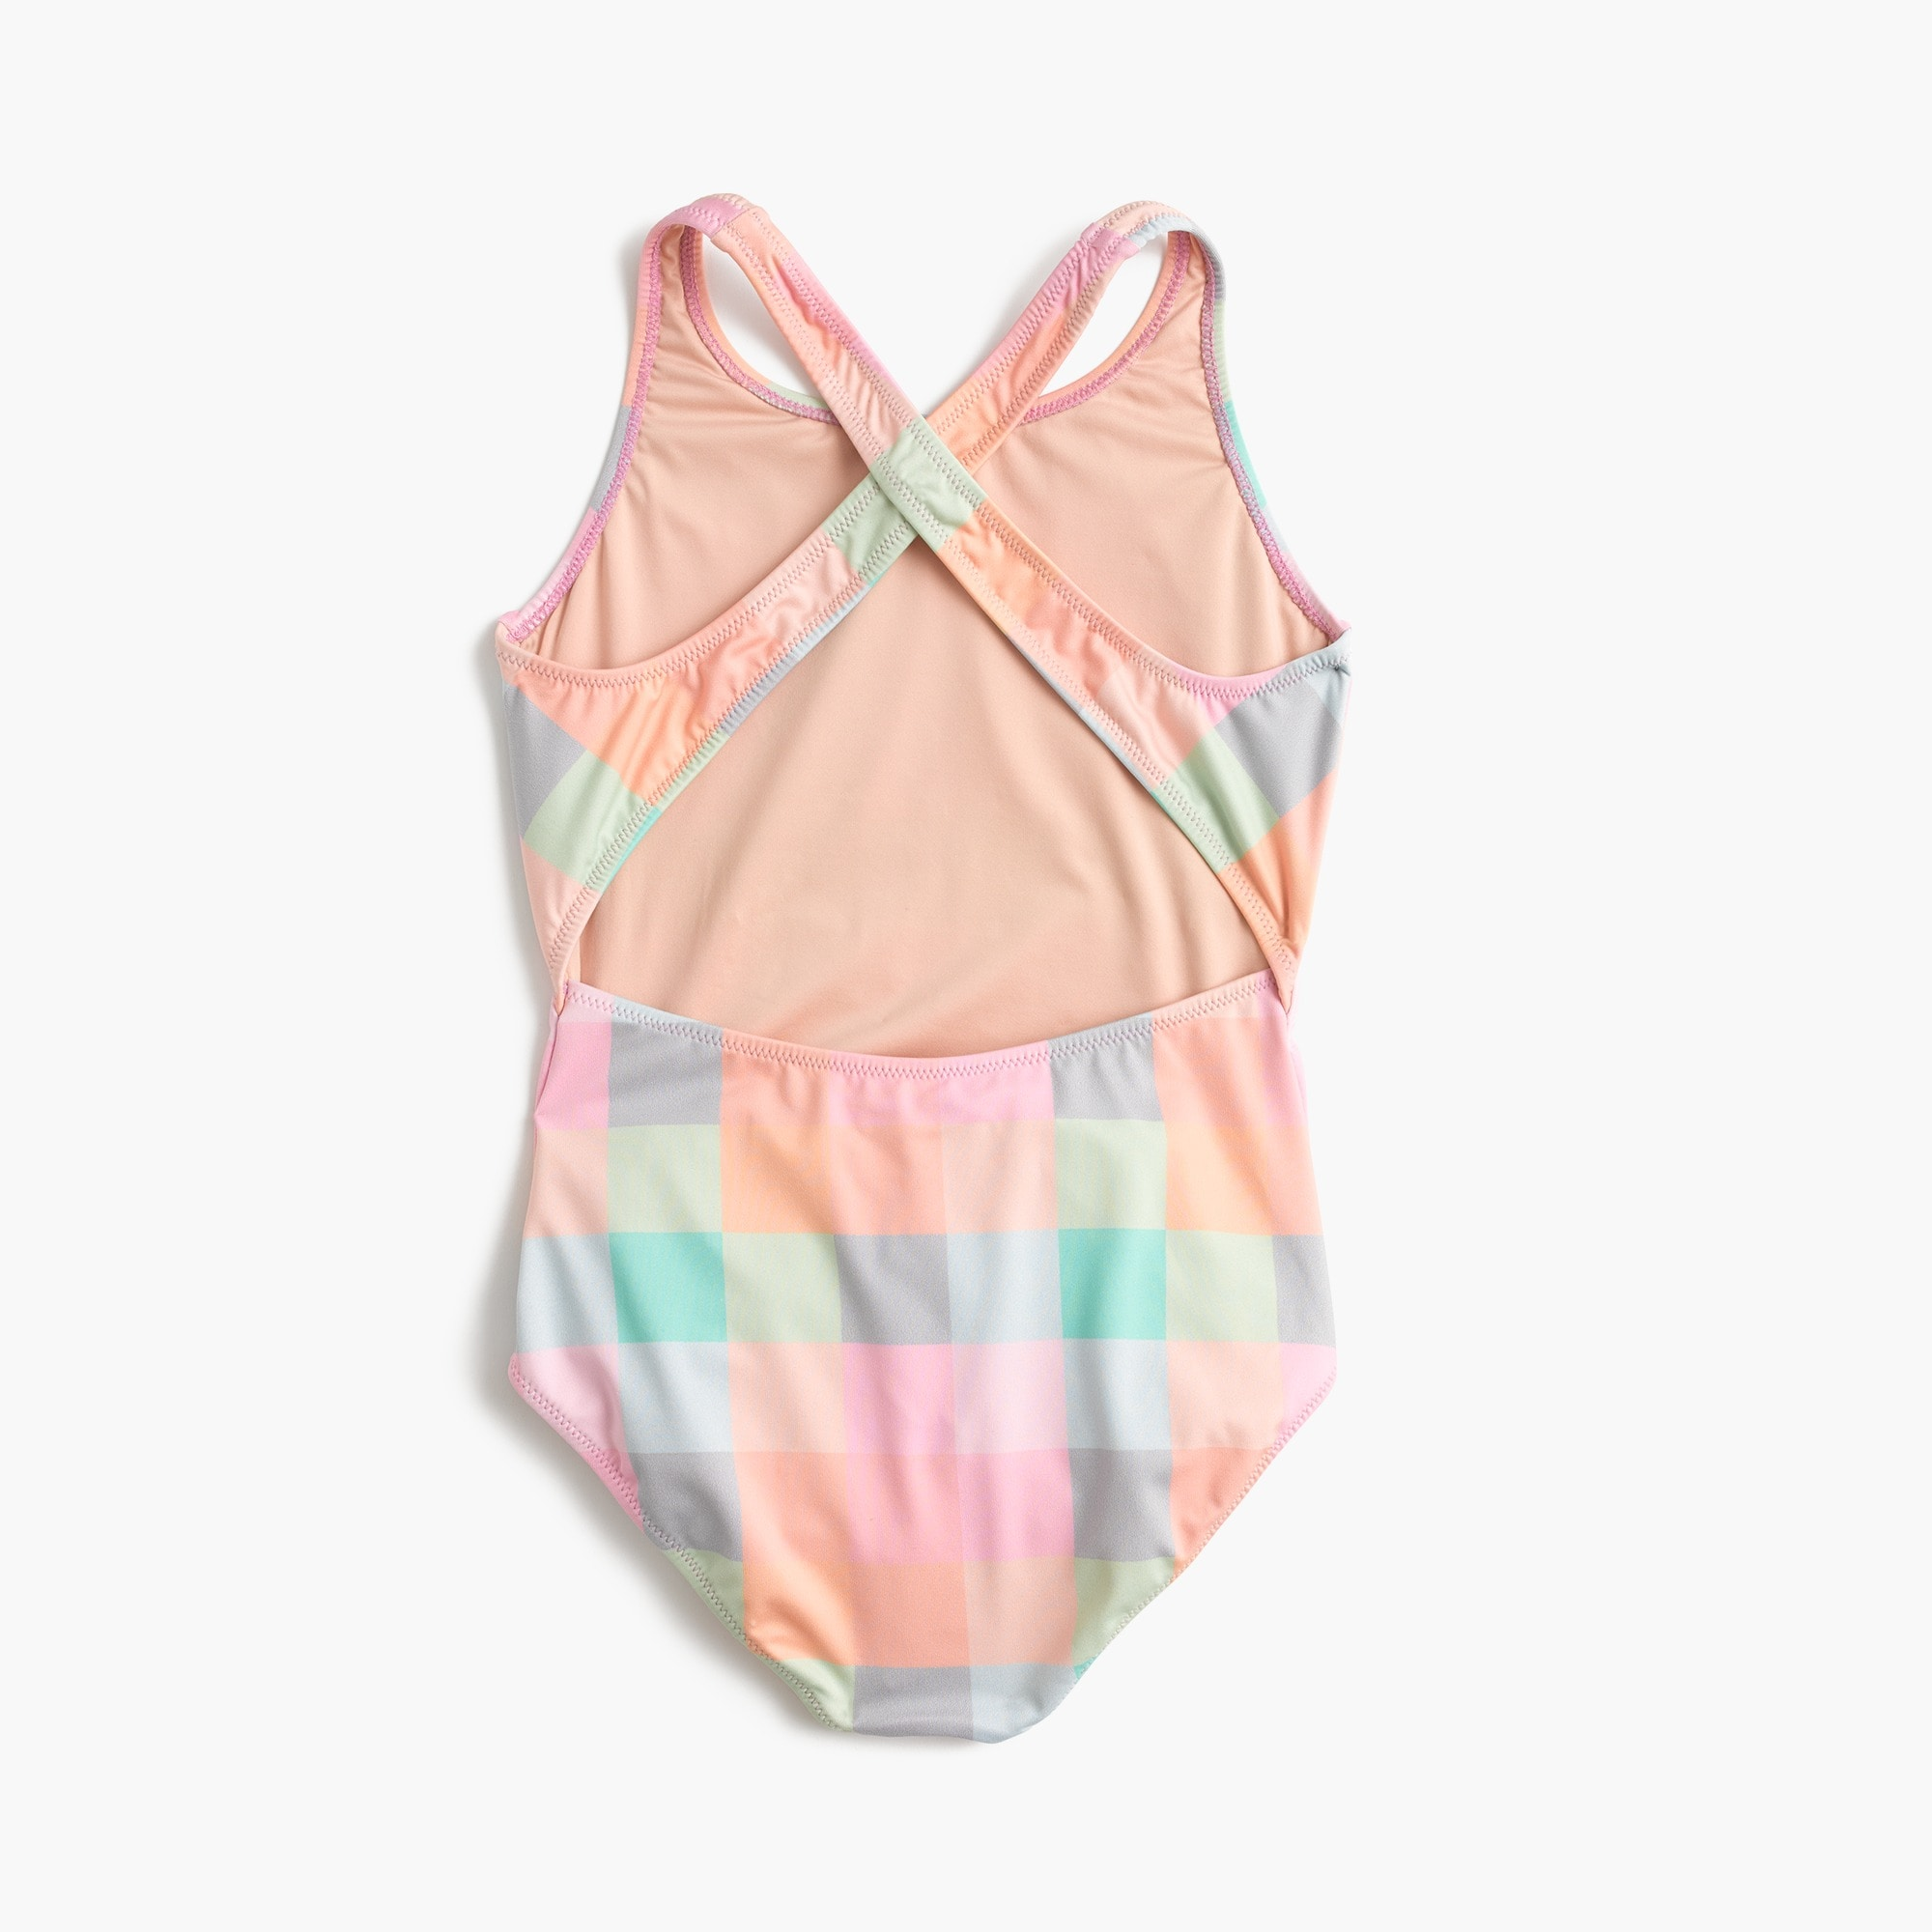 Girls' one-piece swimsuit in oversized rainbow gingham